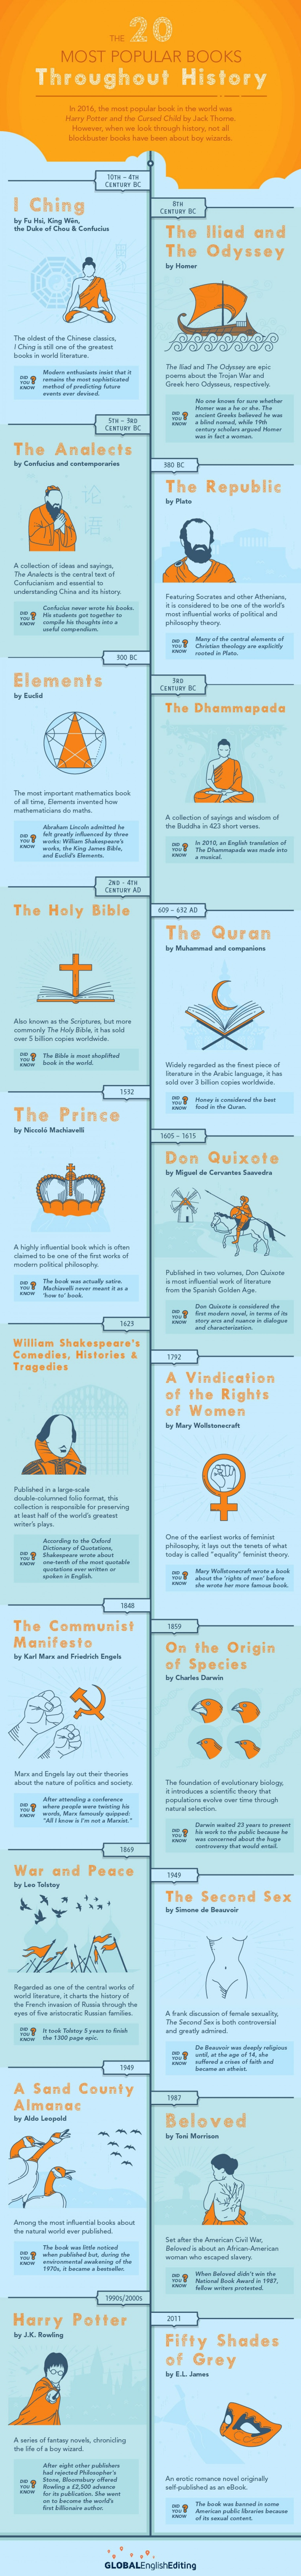 The 20 Most Popular Books Throughout History Infographic